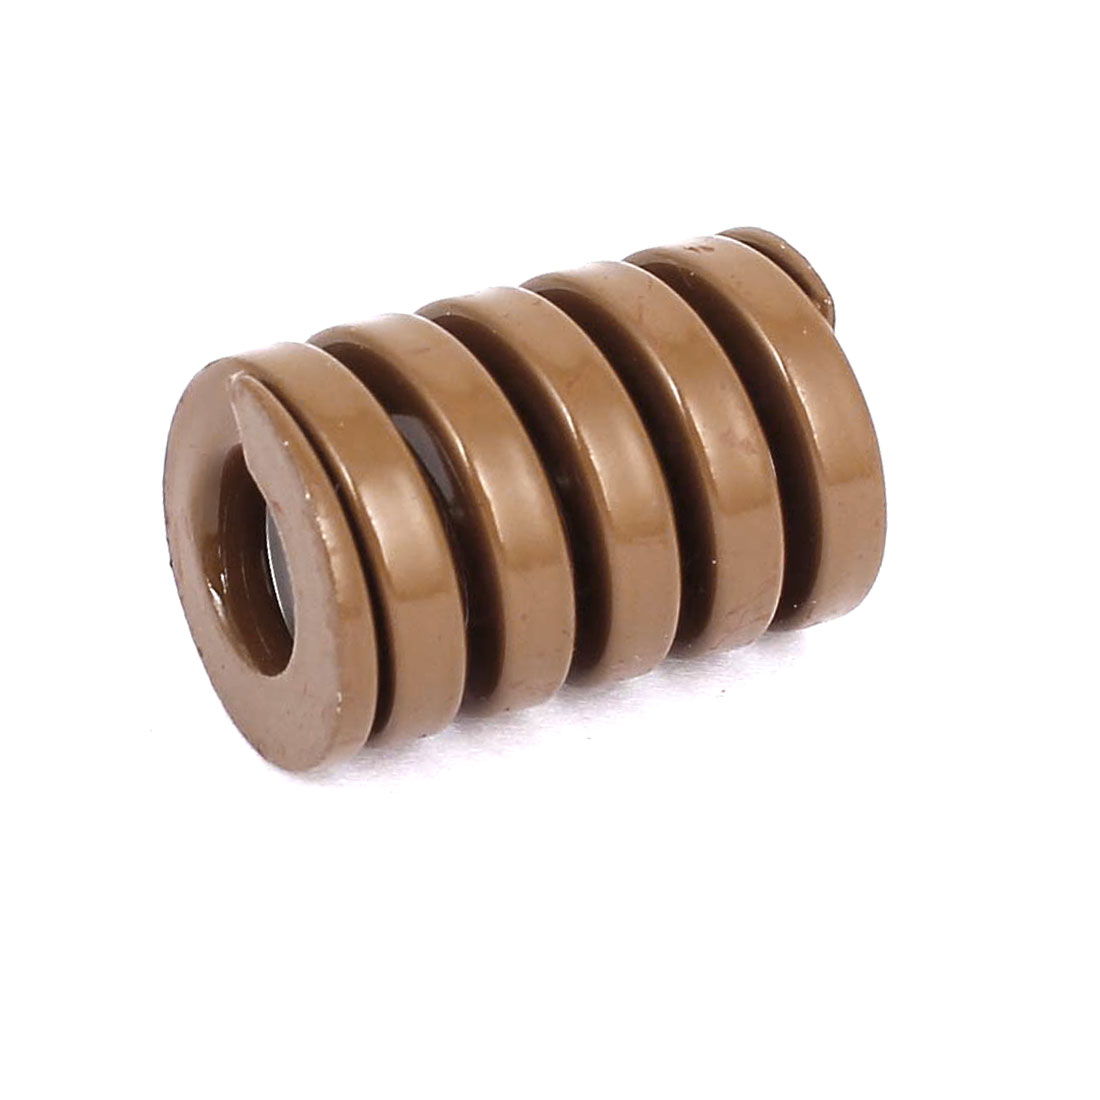 20mm OD 30mm Long Heavy Load Coil Stamping Compression Mold Die Spring Brown